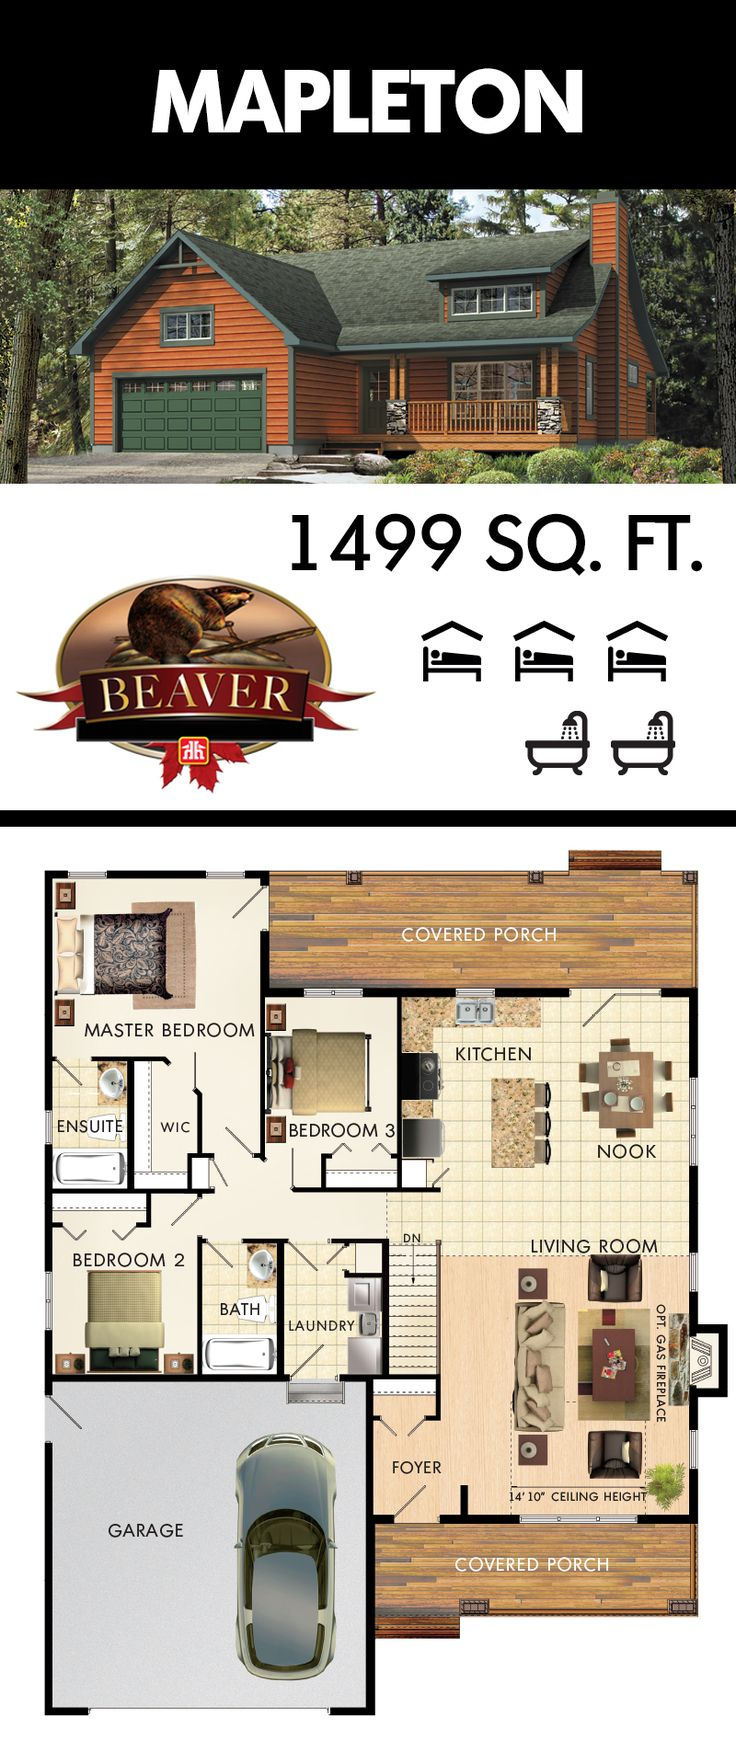 The first thing you notice when entering the Mapleton model is the towering 14' ceilings and overhead windows, adding the perfect amount of natural light. #BeaverHomesAndCottages